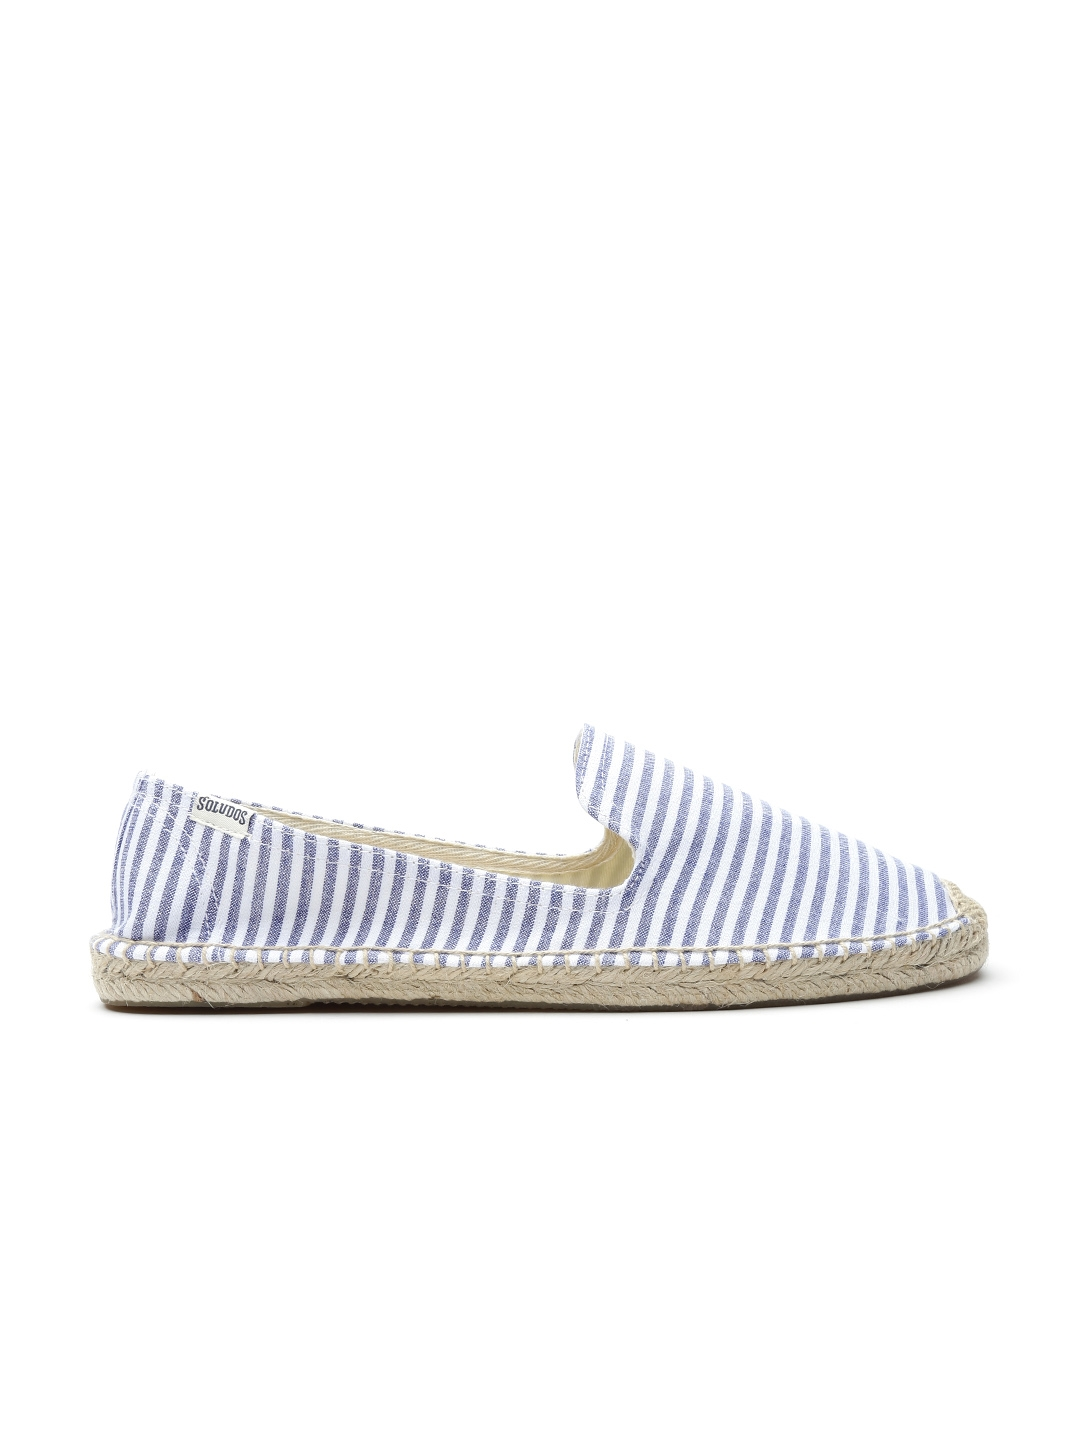 f84bcda27 Buy Soludos Women Blue & White Smoking Striped Espadrilles - Casual Shoes  for Women 1343939 | Myntra